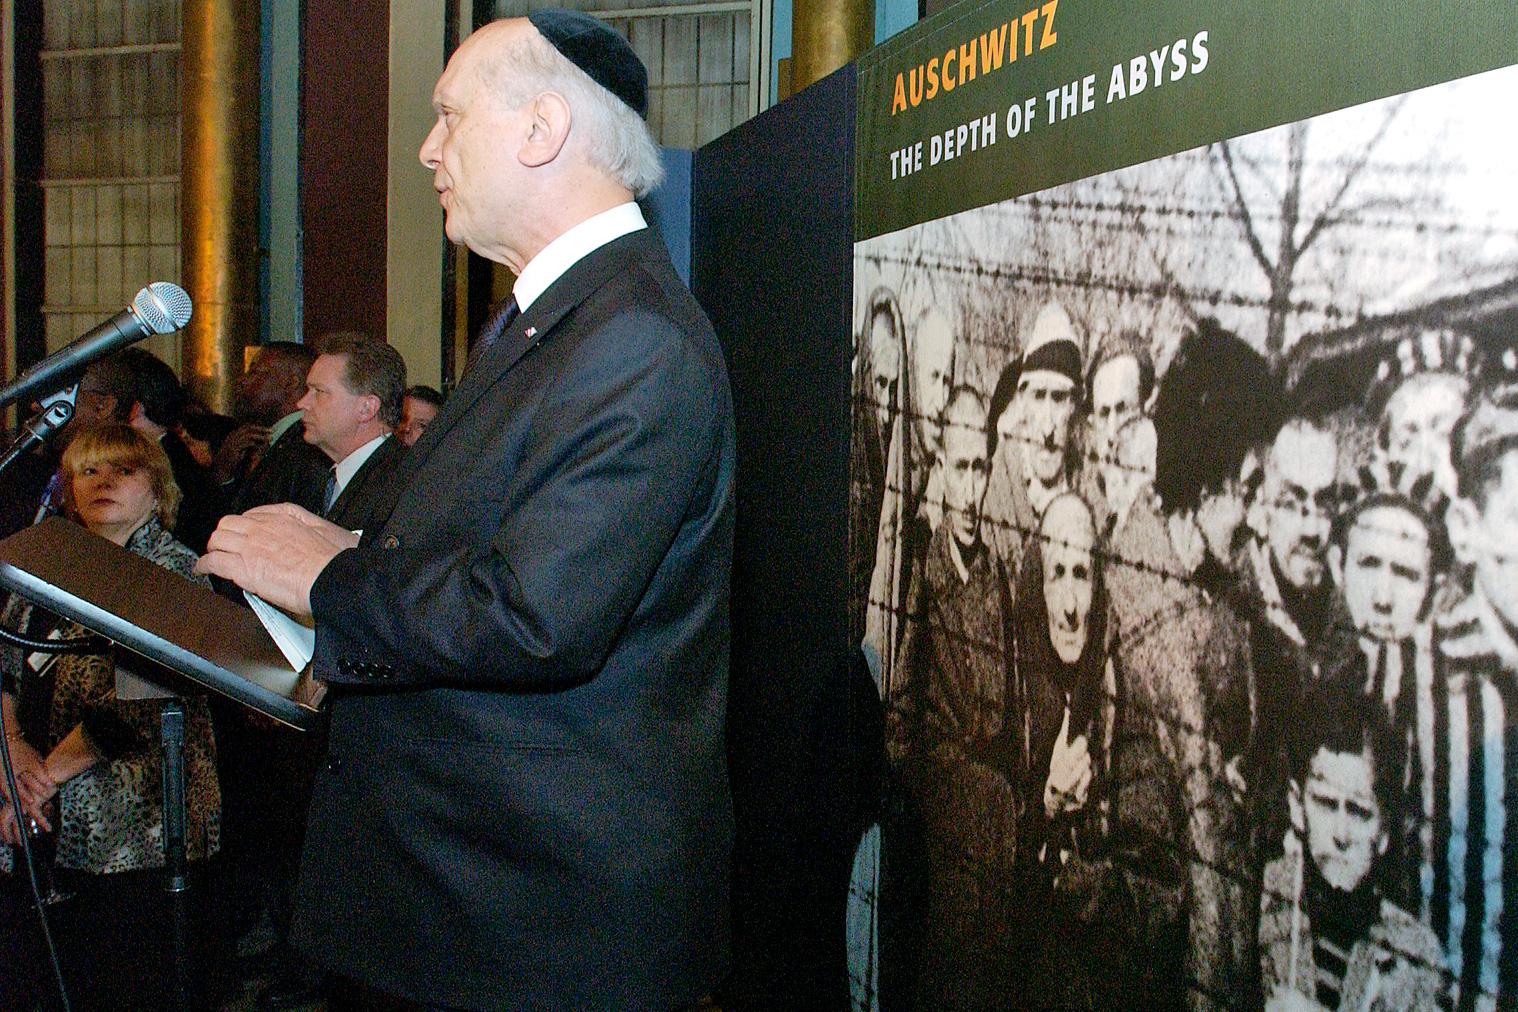 Rabbi Arthur Schneier is at a podium with a large poster depicting 'Auschwitz - the Depth of the Abyss' behind him.